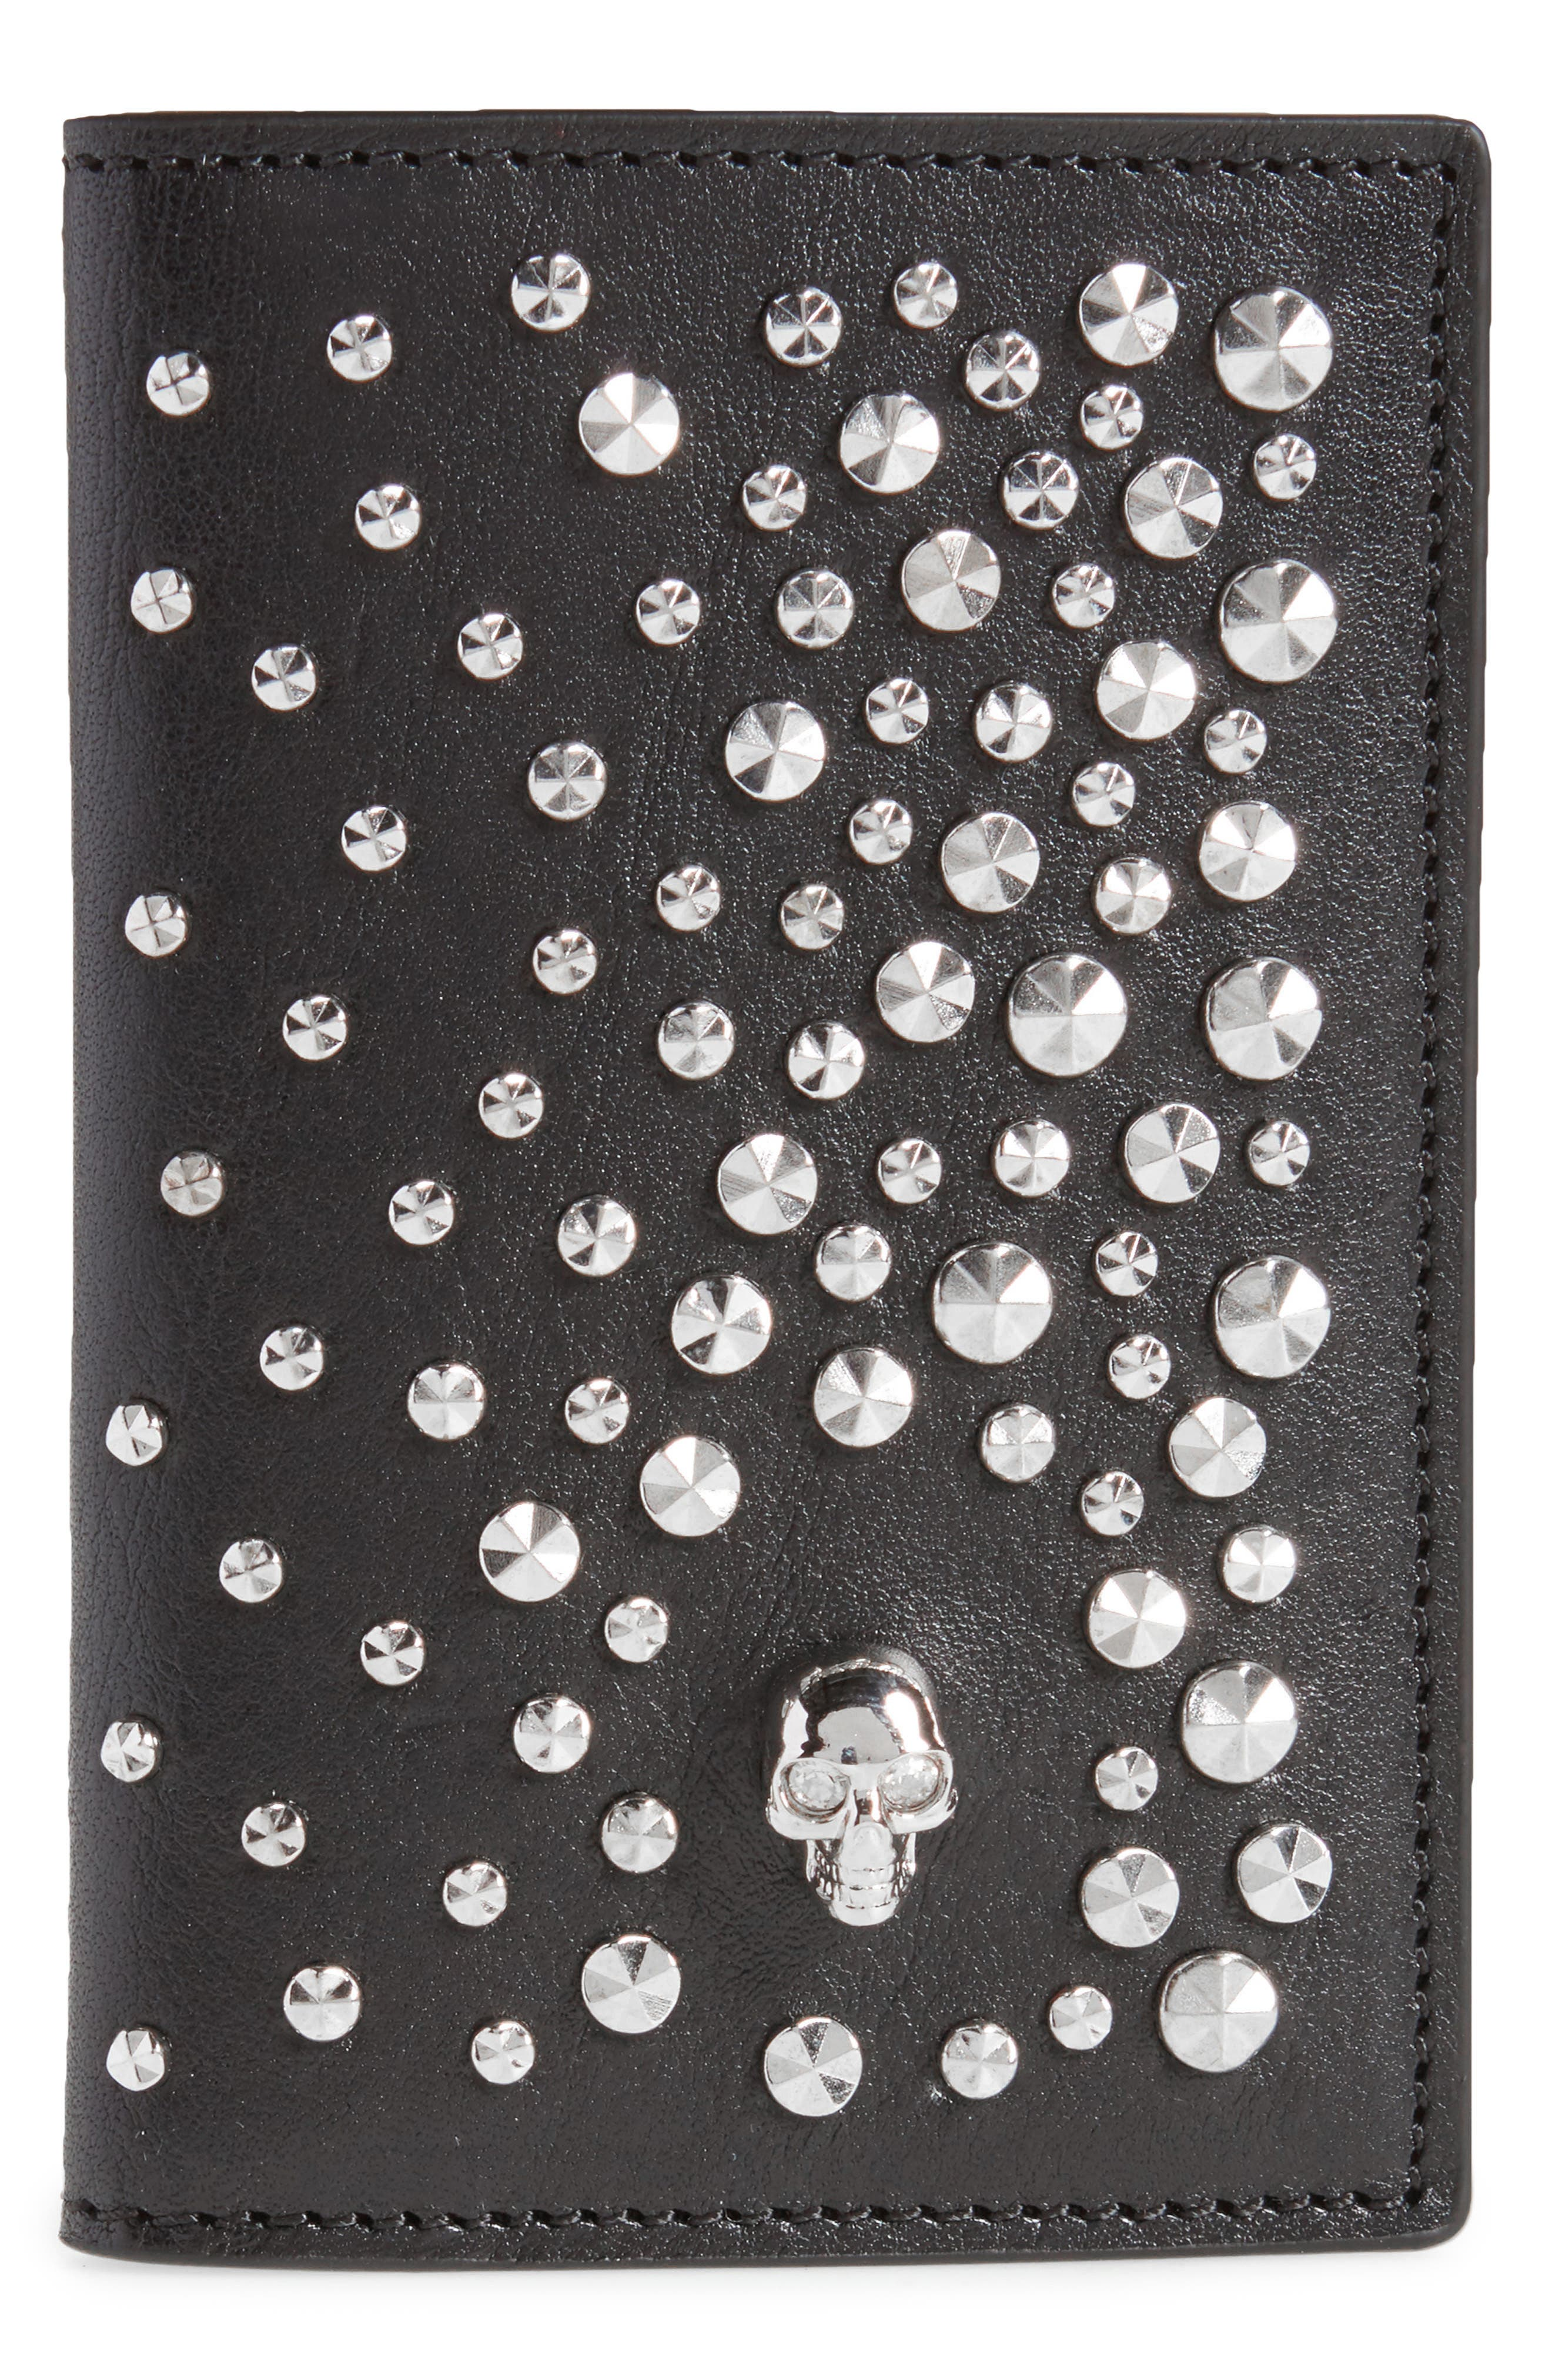 Alternate Image 1 Selected - Alexander McQueen Studs & Skull Leather Card Case